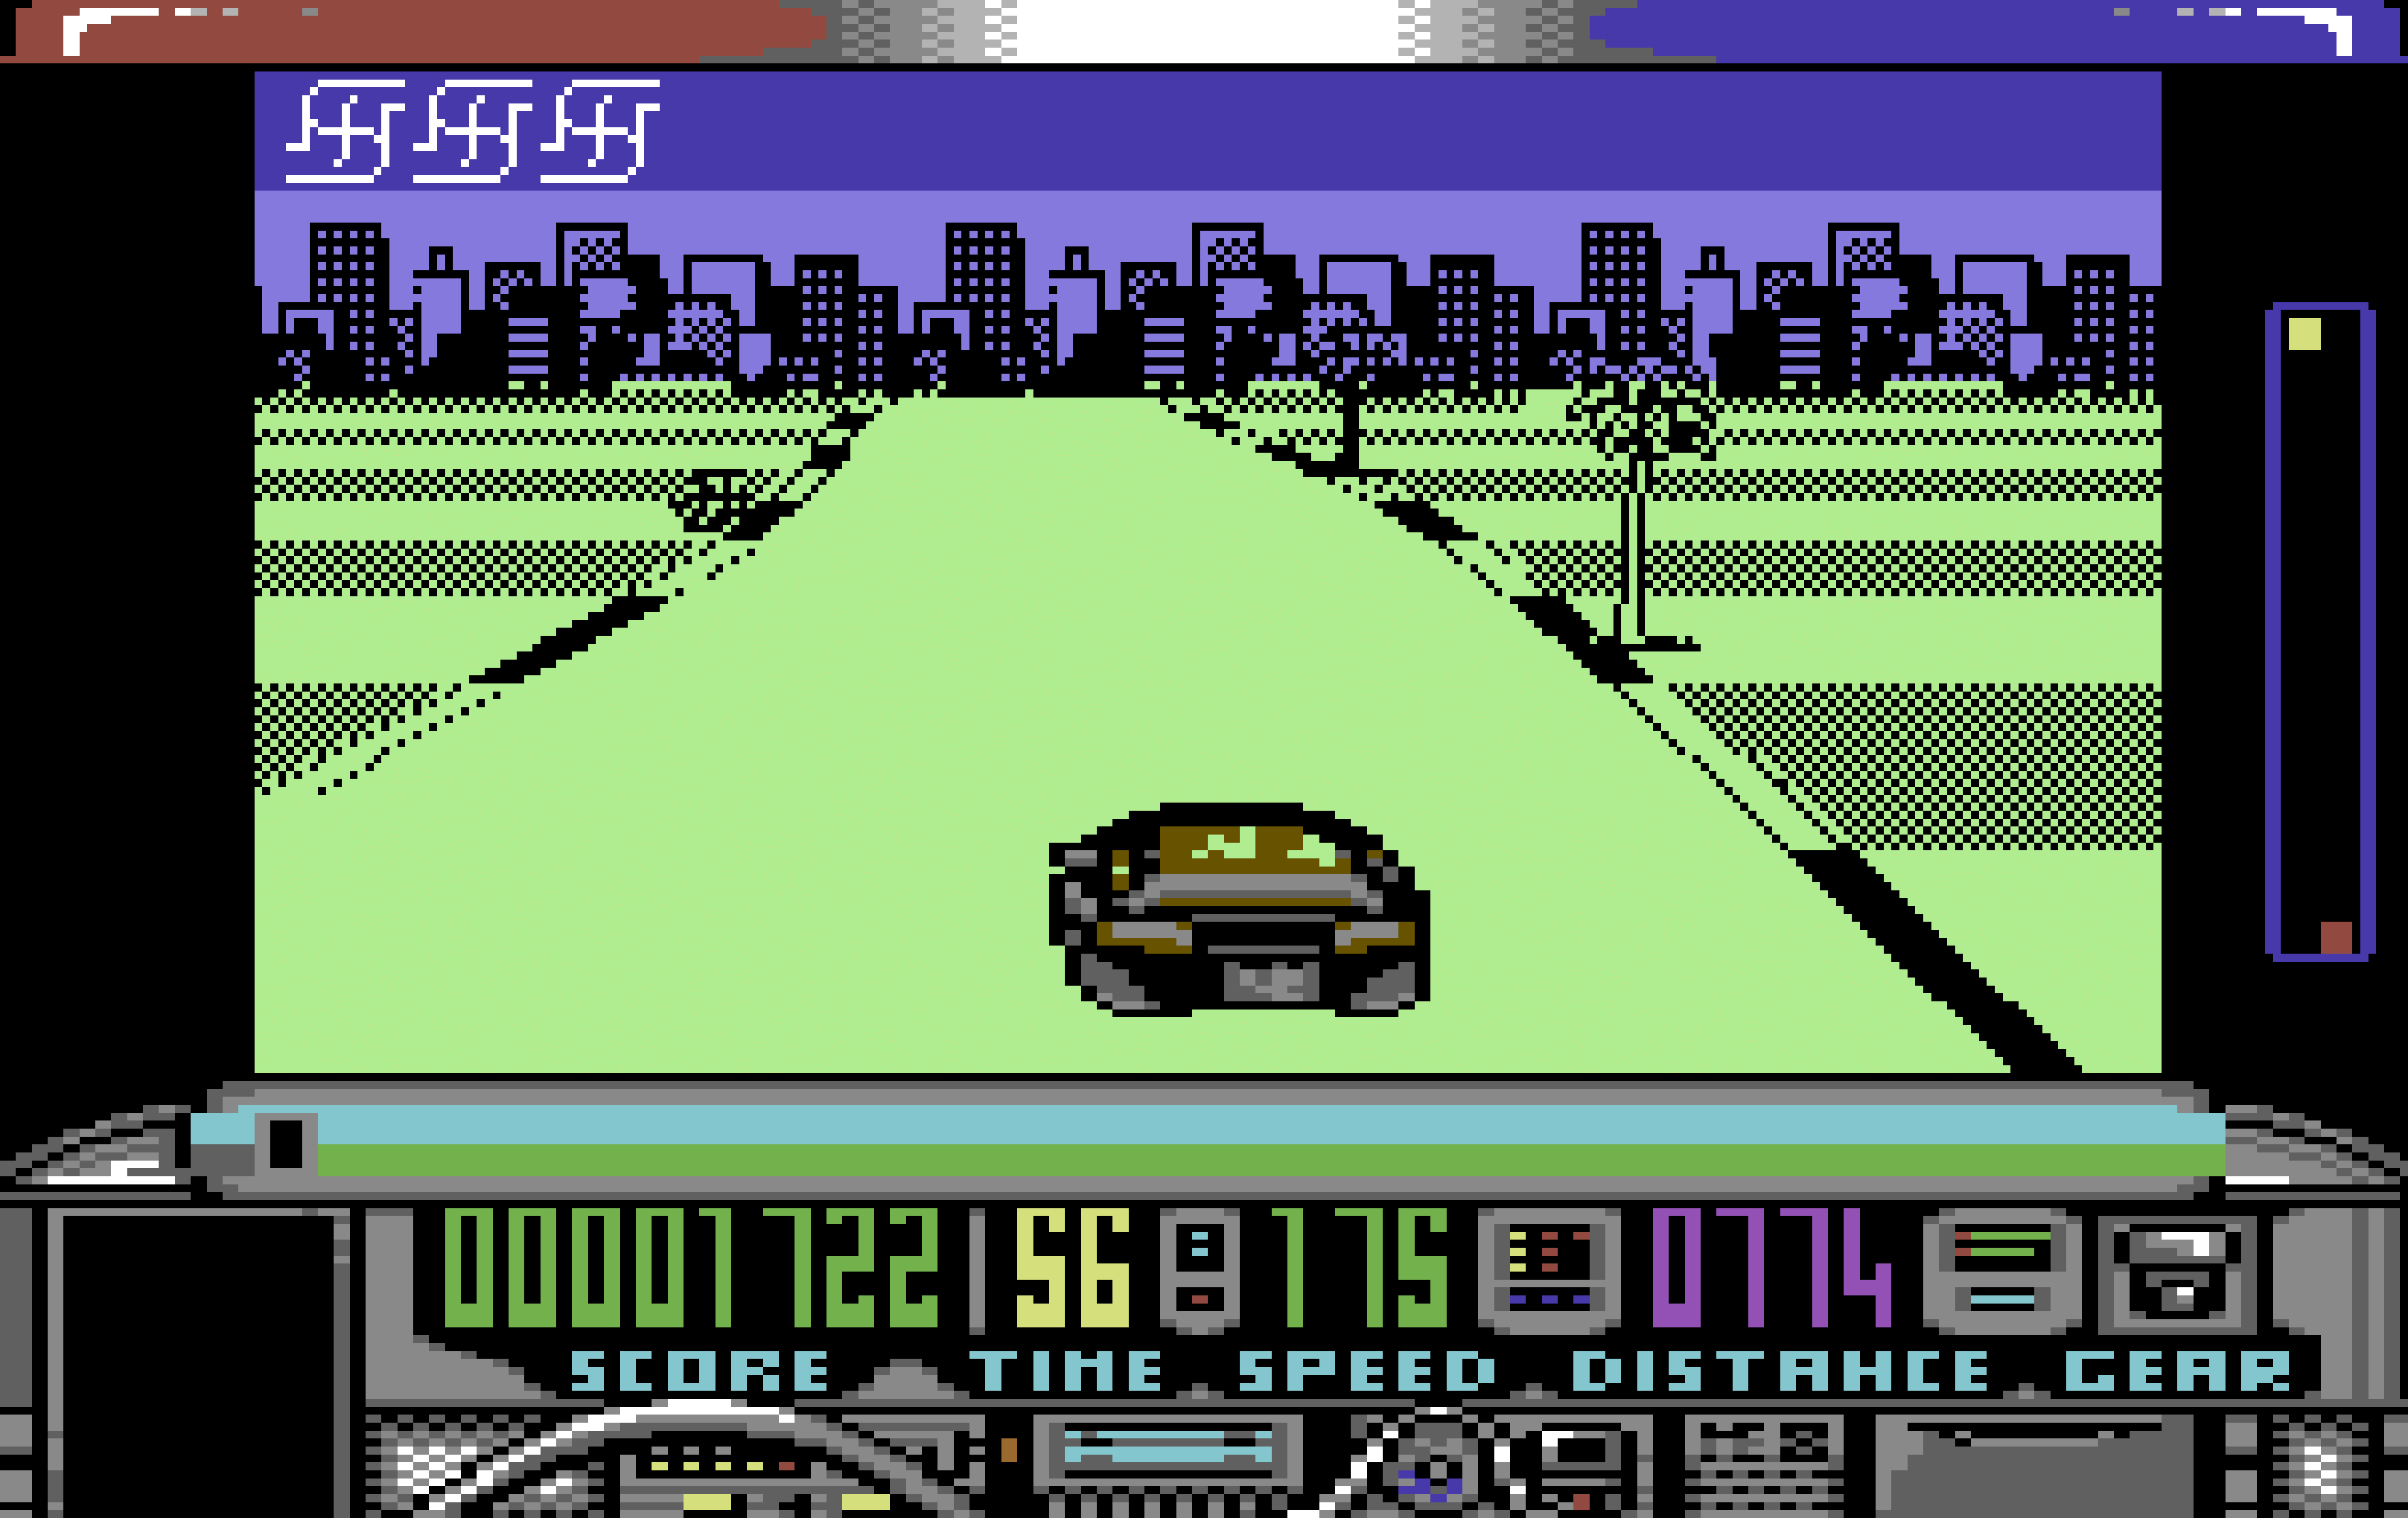 Chase HQ on the Commodore 64.